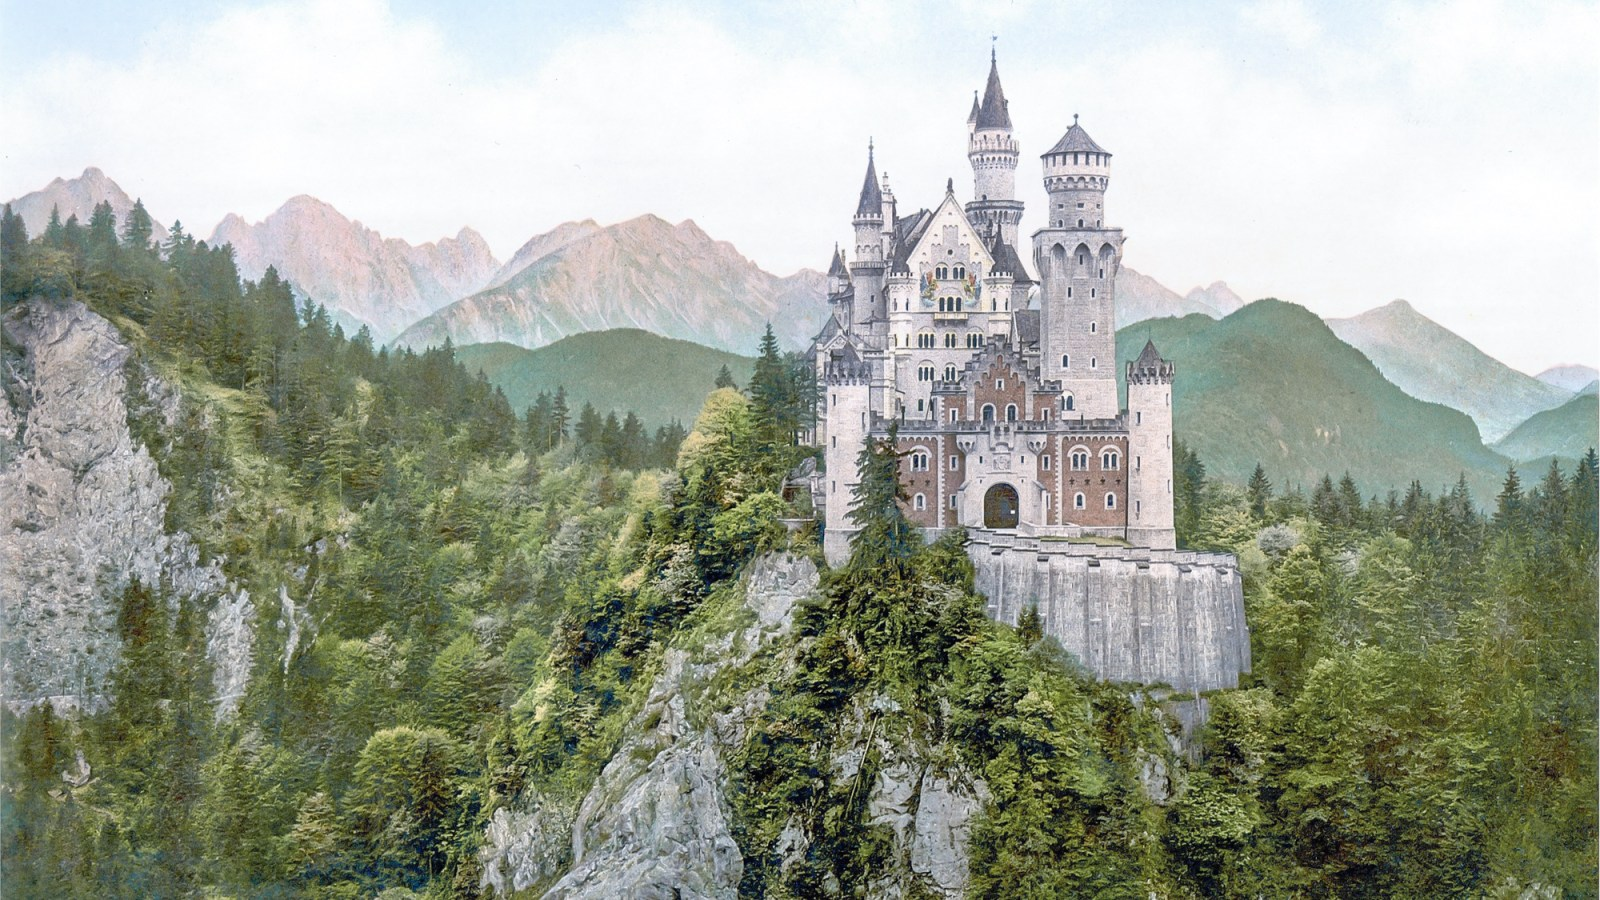 Traveling to Germany? Read these book | Books to read before traveling to Germany | WWII, Mad King Ludwig and Neuschwanstein Castle, Swan King, history